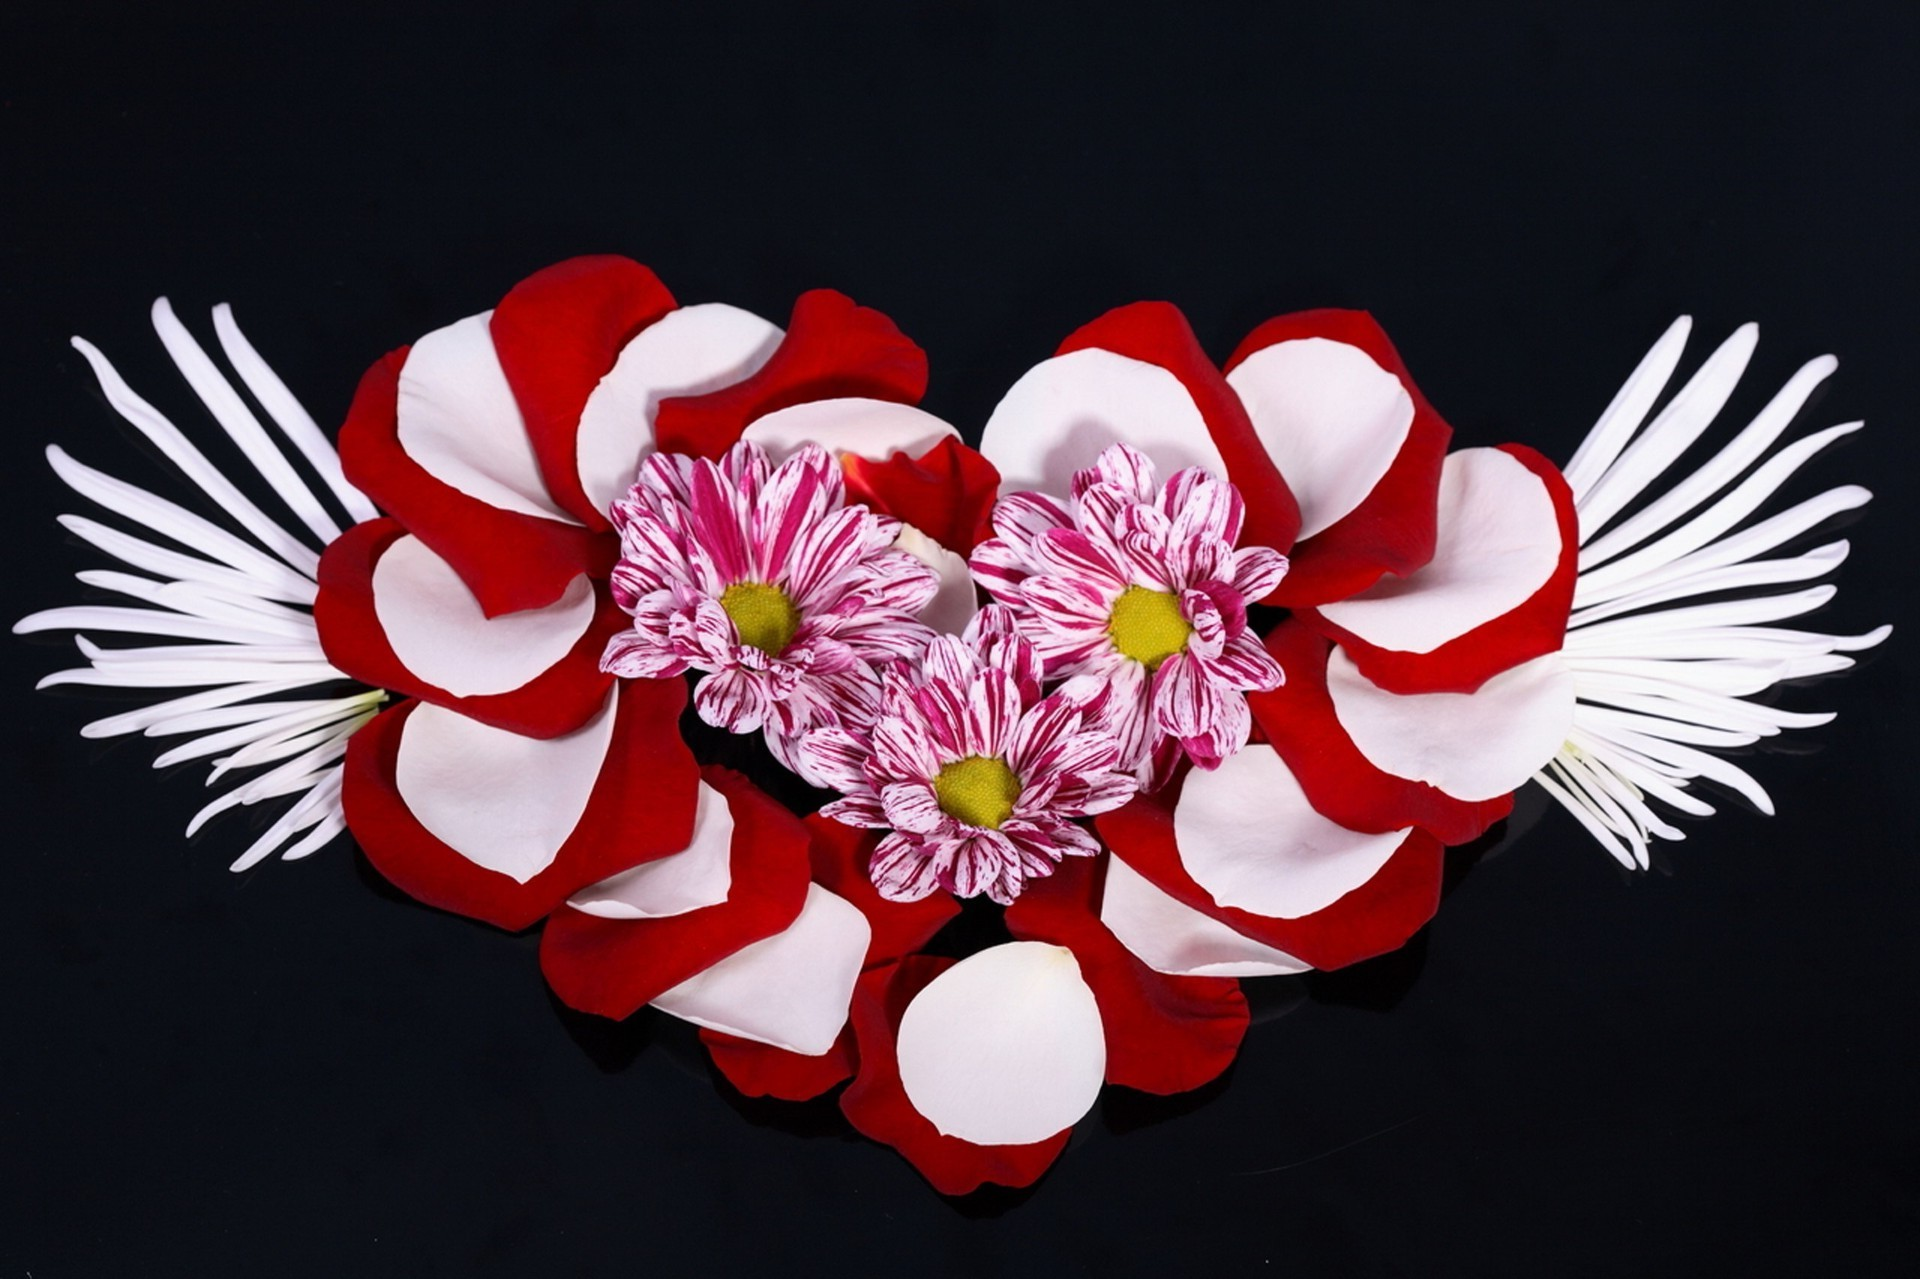 hearts flower gift love beautiful decoration celebration petal desktop nature flora romantic floral romance color blooming bright